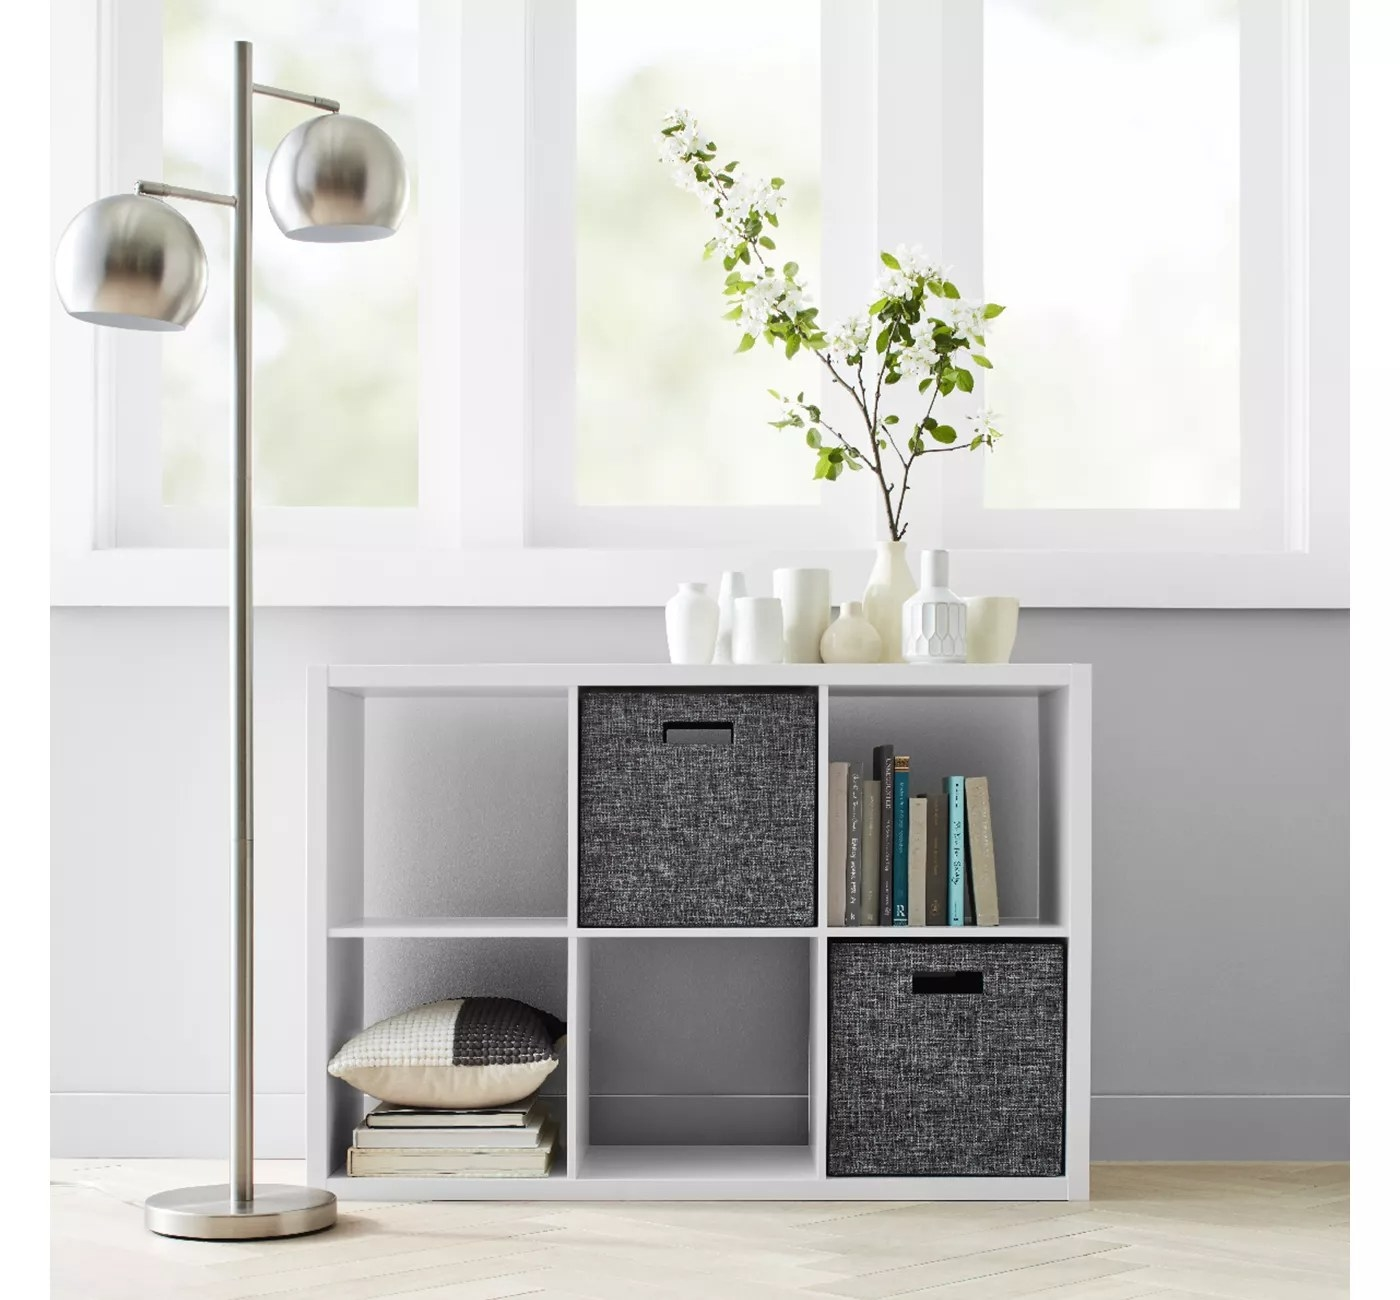 The cube shelf, with six separate compartments, in a living space